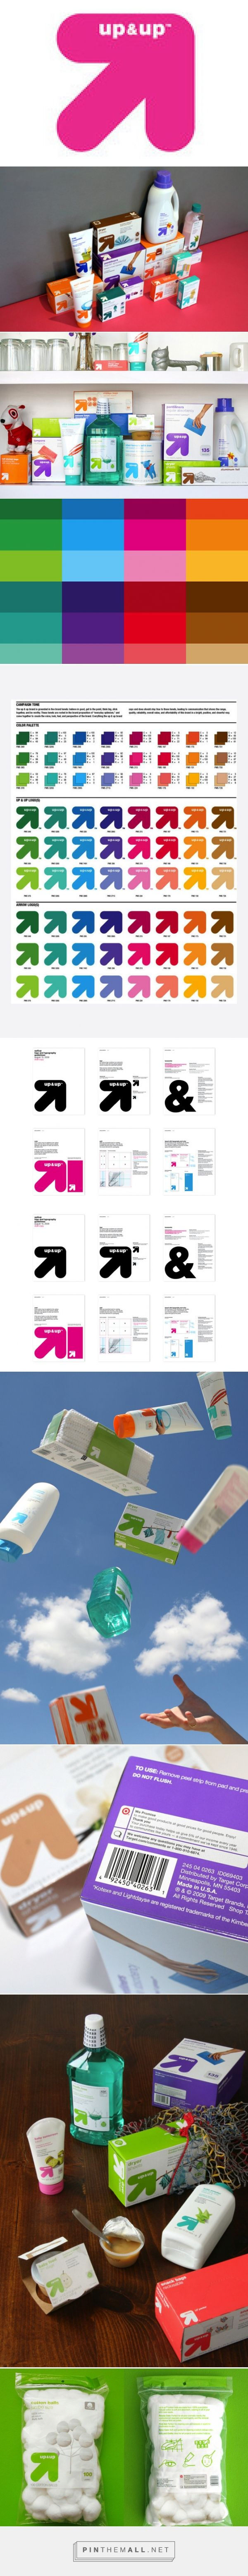 Target packaging branding by Wolff Olins curated by Packaging Diva PD. The behind the scenes story for up & up private label.